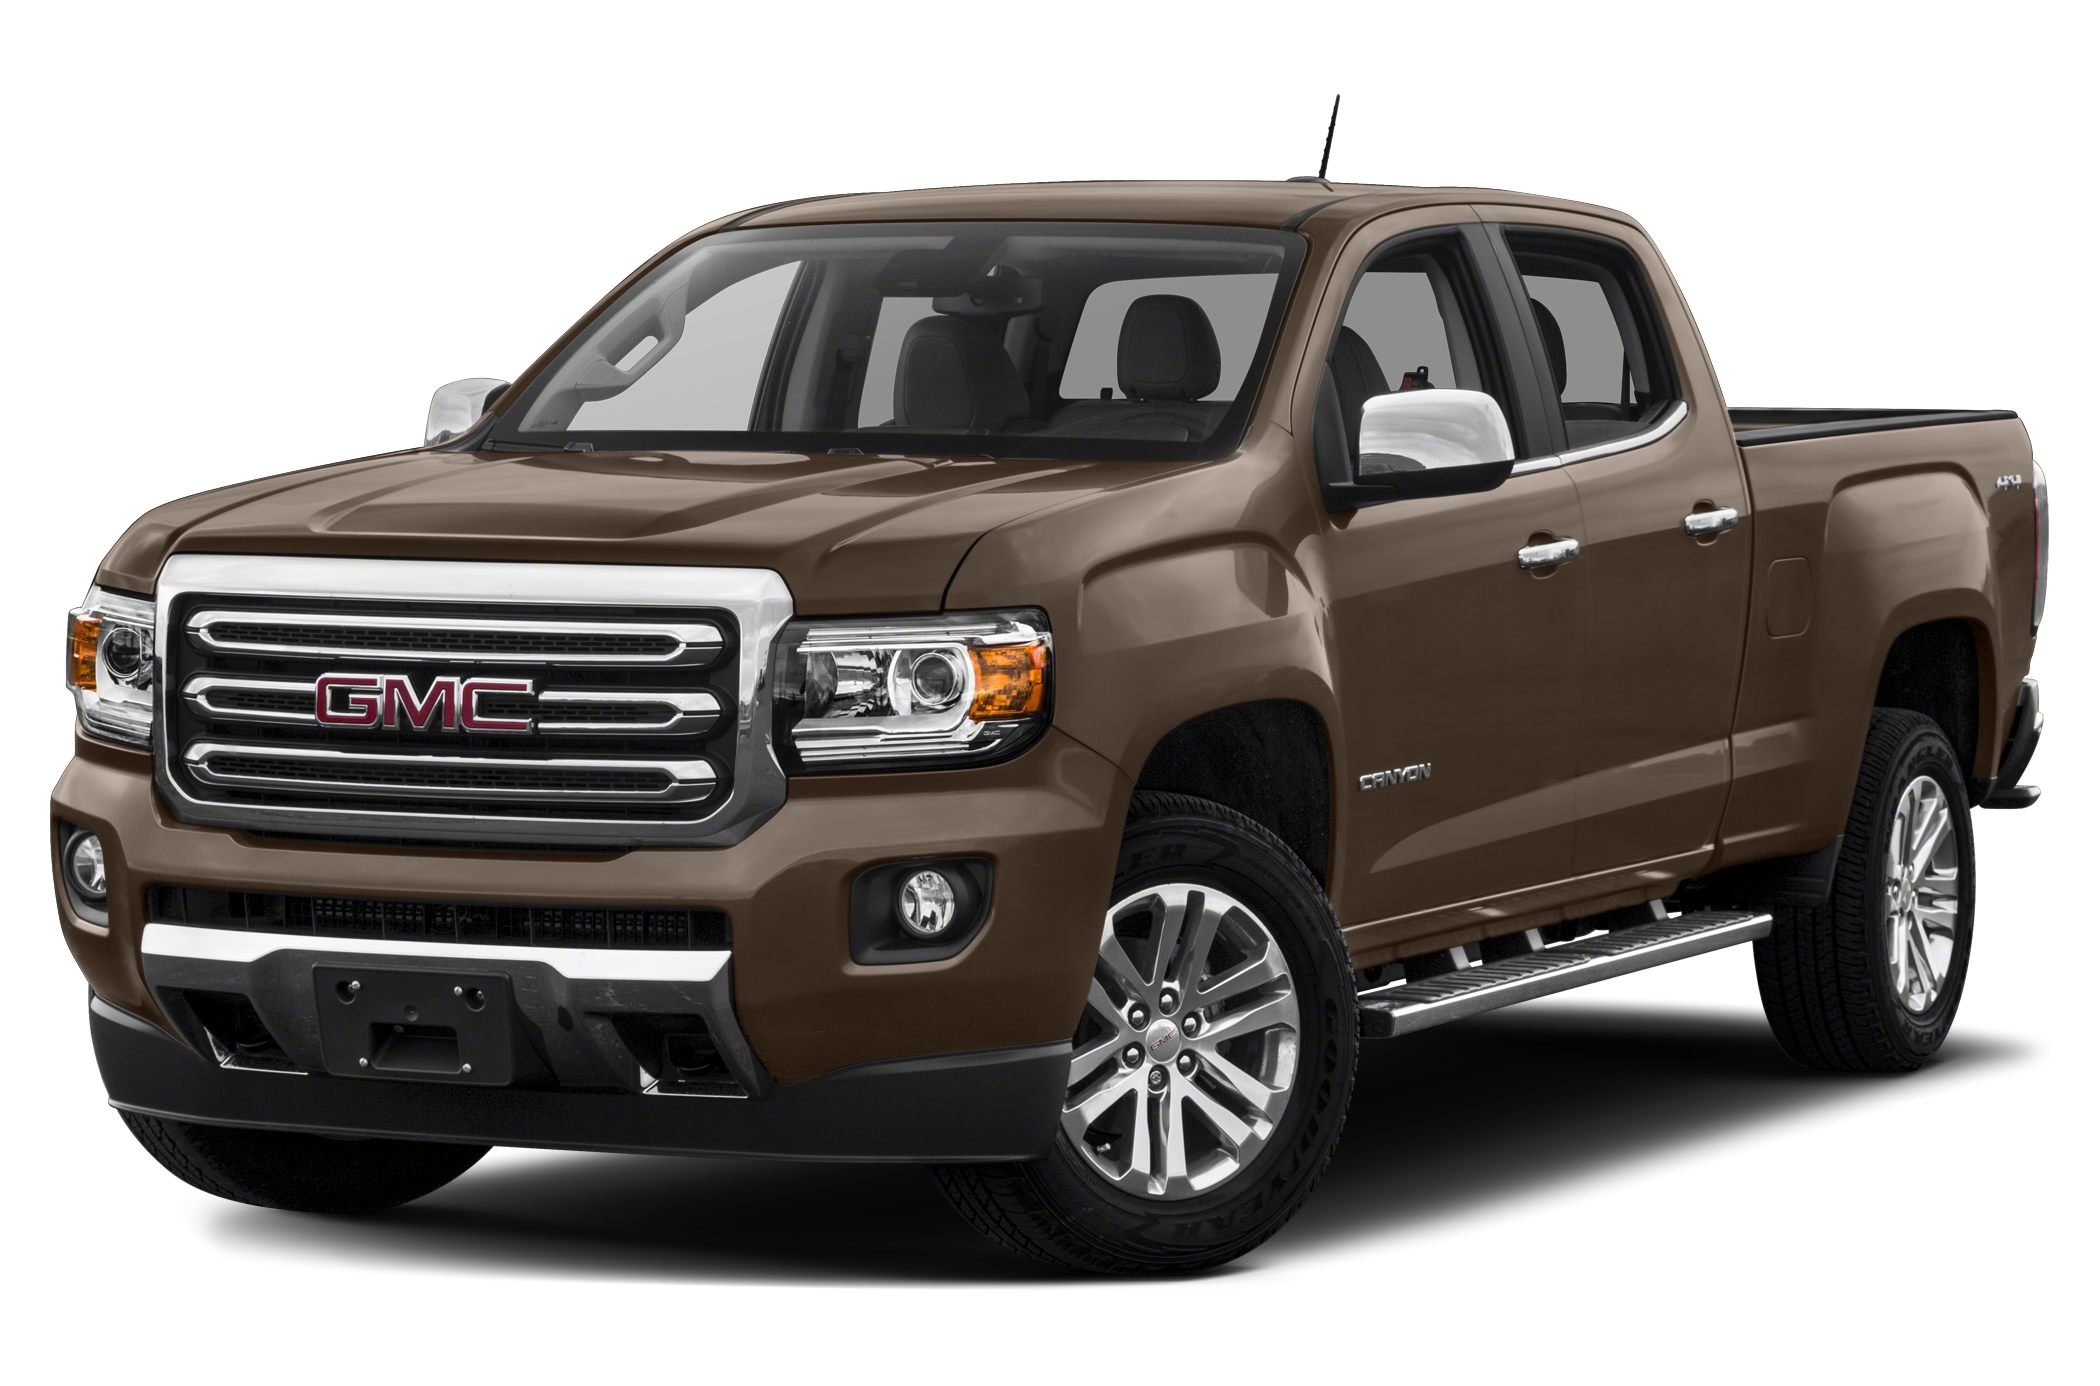 2017 Gmc Canyon Slt 4x2 Crew Cab 5 Ft Box 128 3 In Wb For Sale